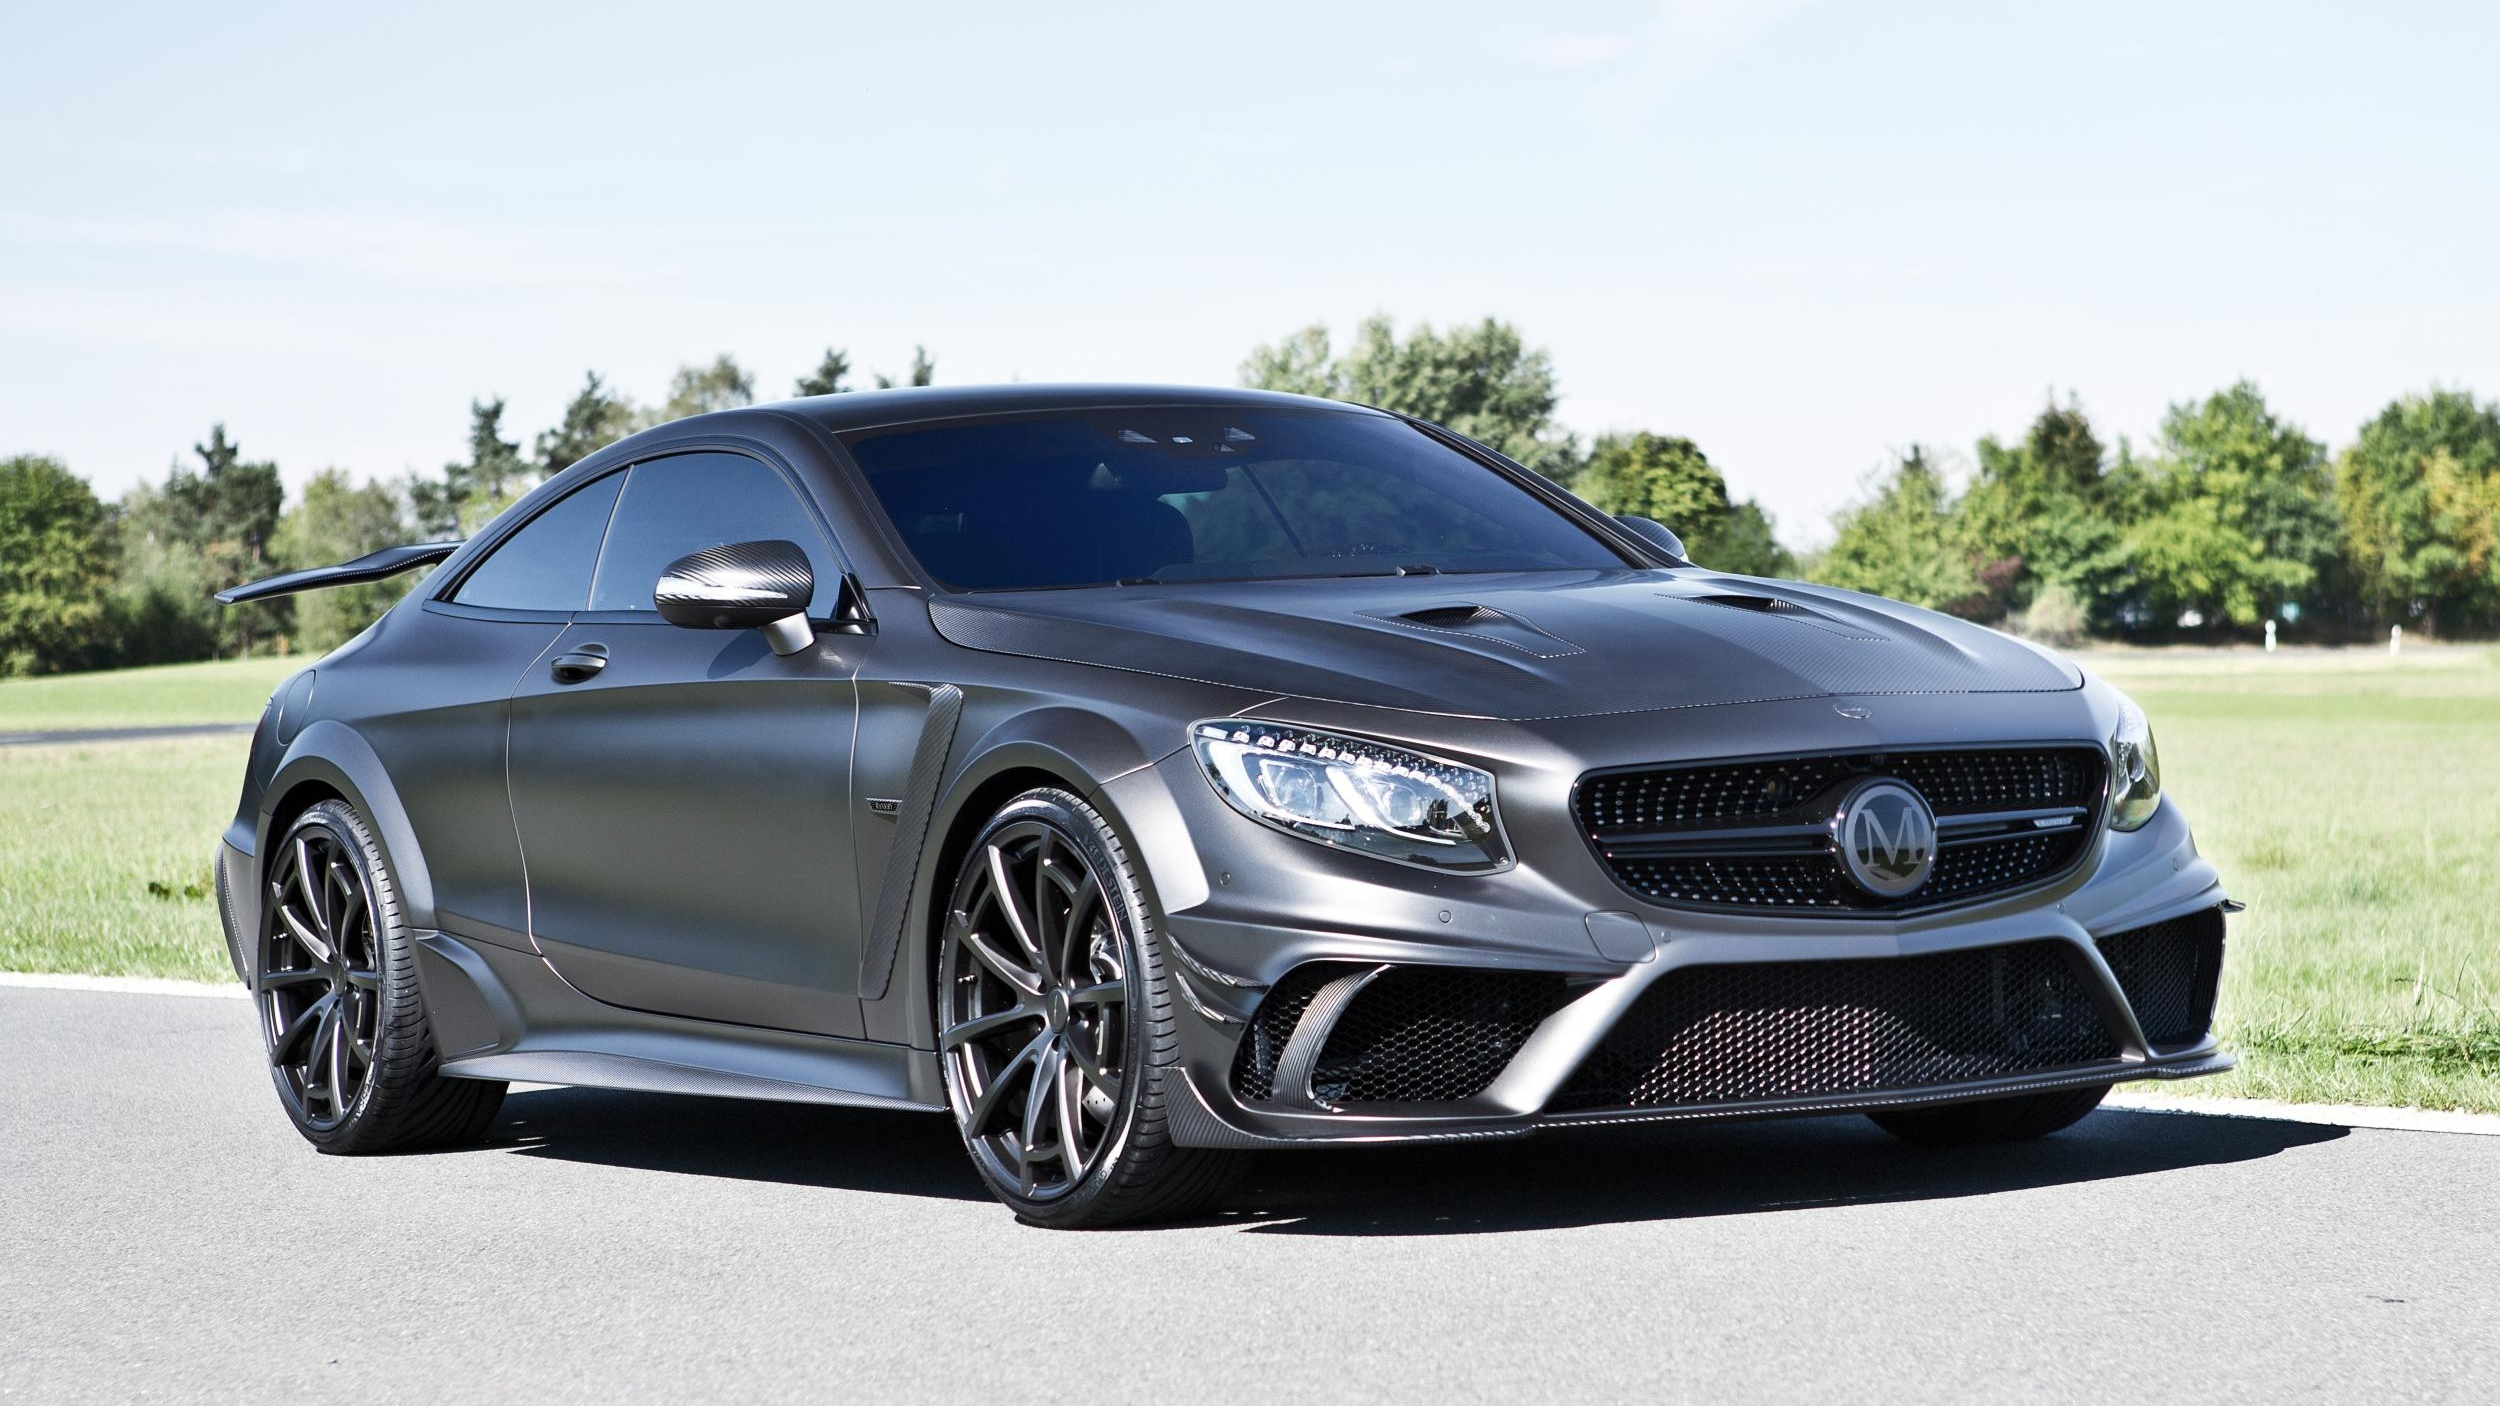 2016 mercedes amg s63 coupe black edition by mansory top. Black Bedroom Furniture Sets. Home Design Ideas